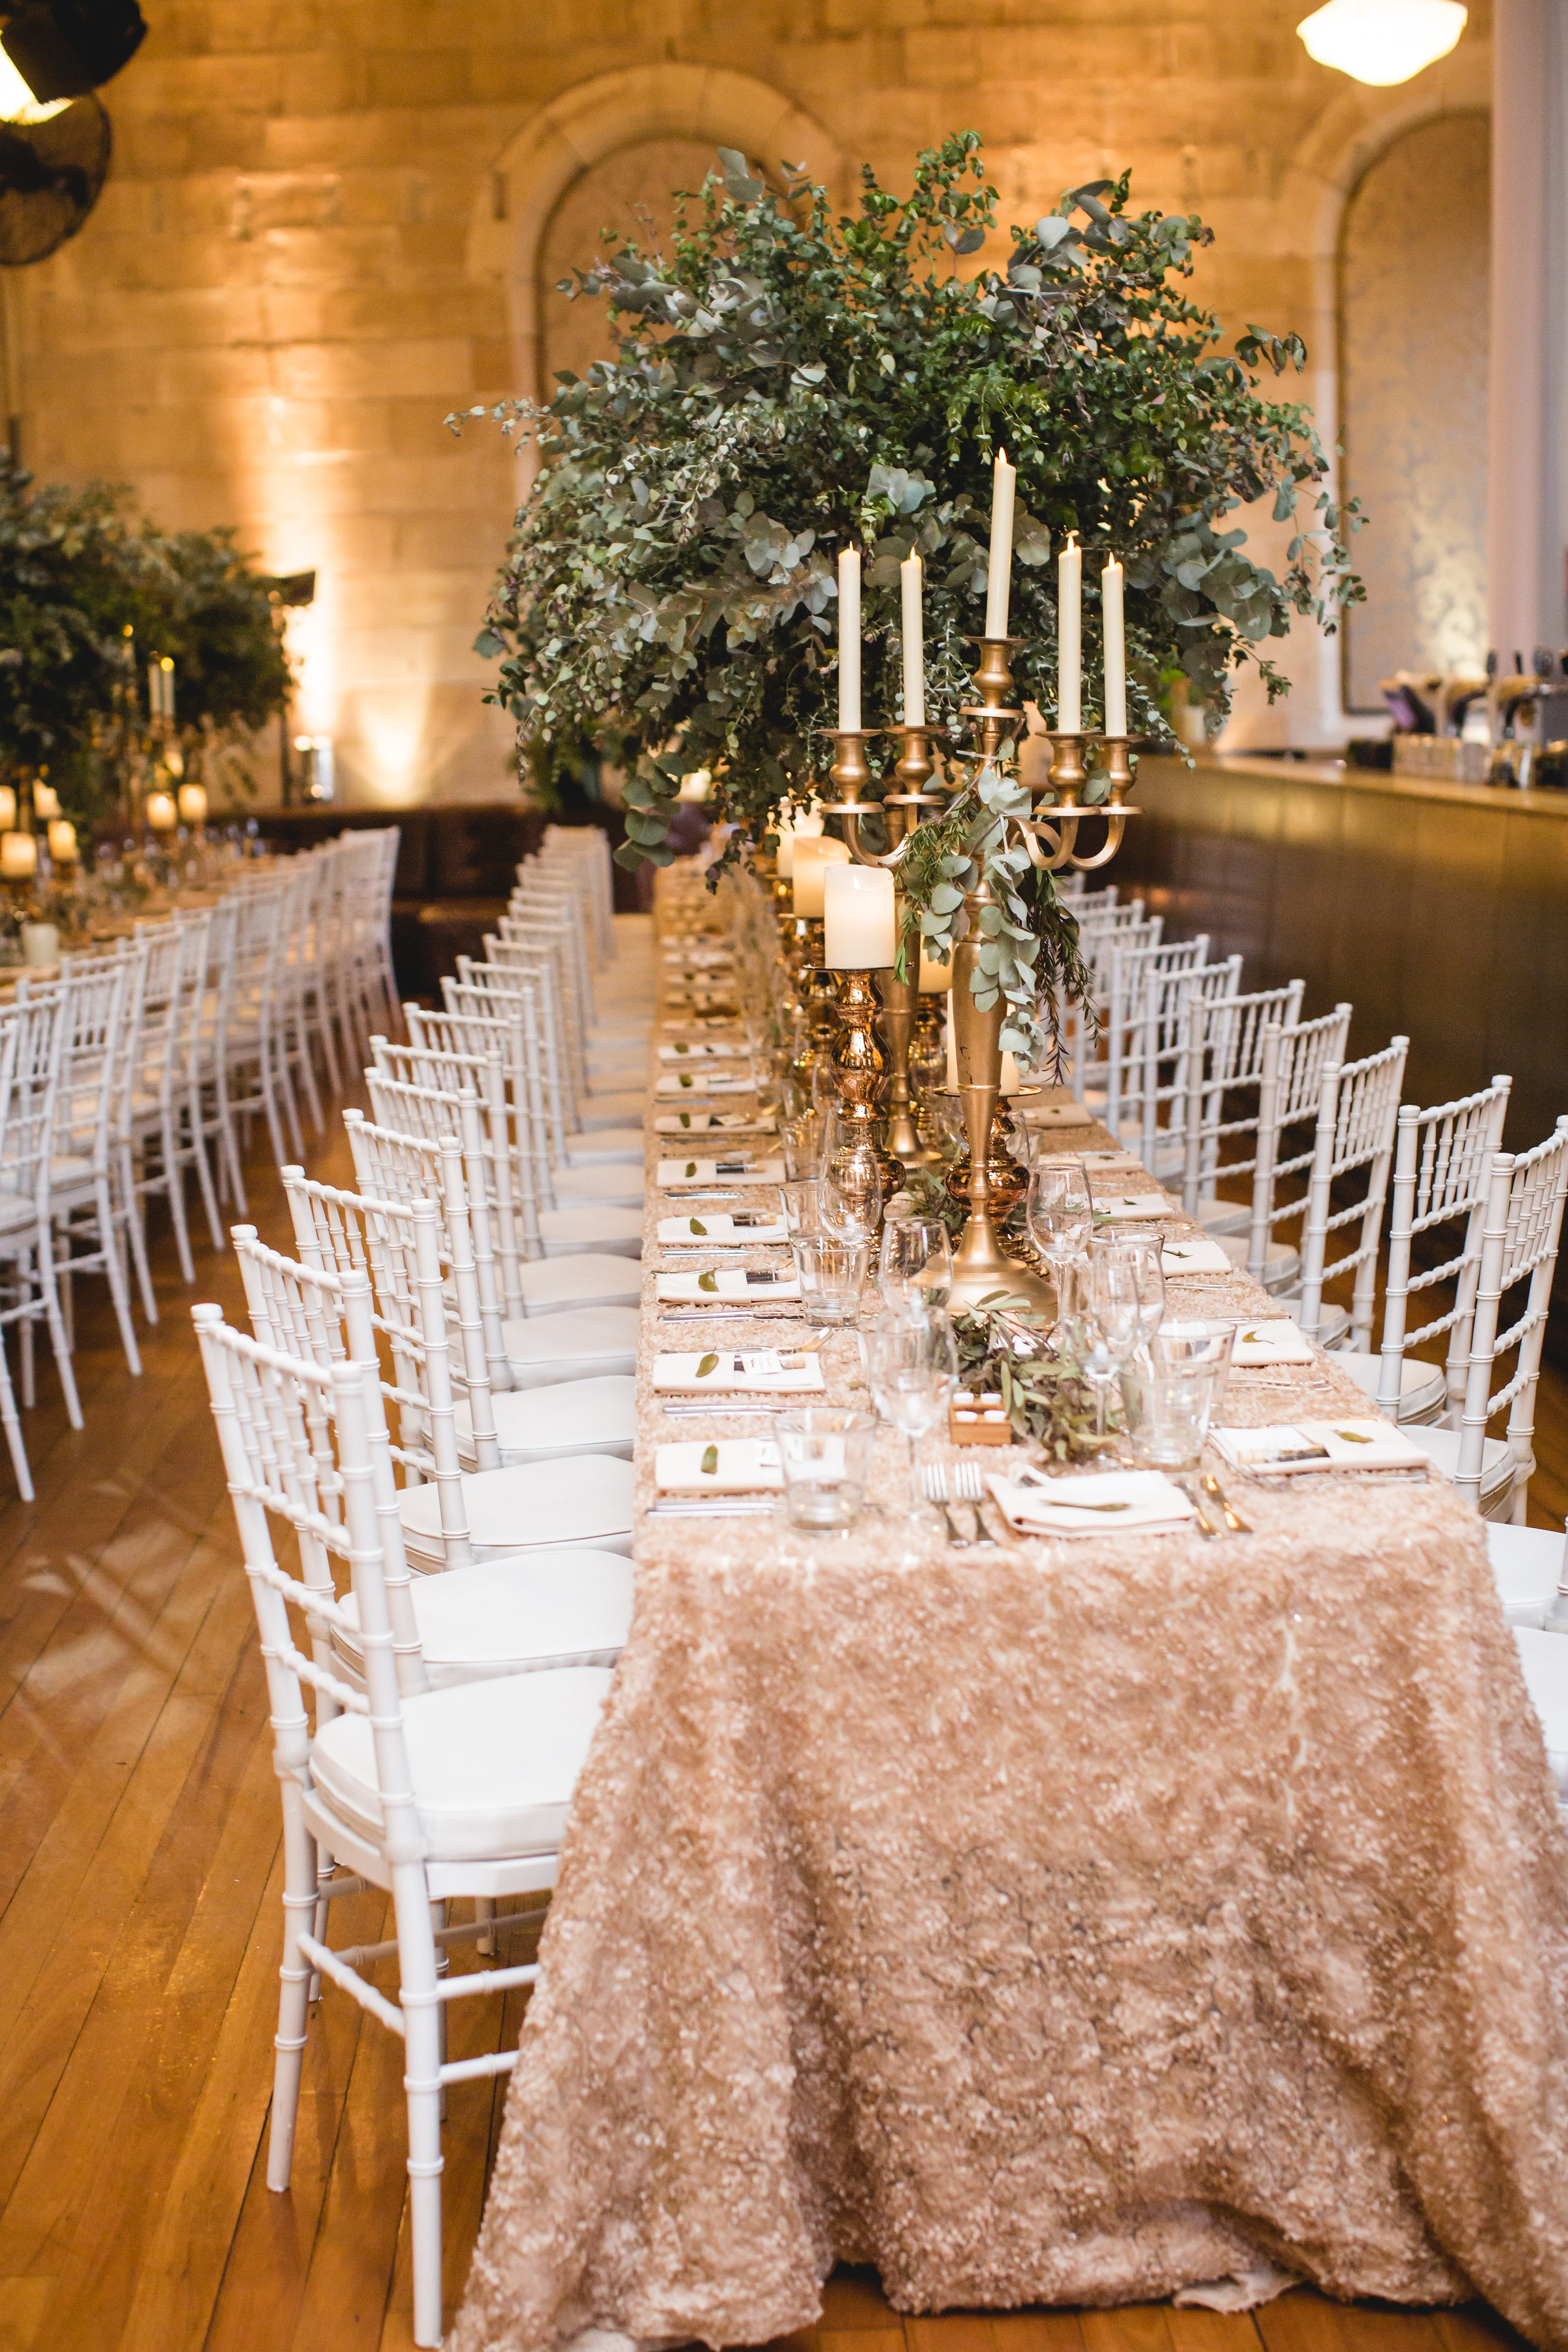 Columbine and Damien - Champagne Heather luxury linen, gold Stefania candlesticks with LED pillar candles, gold 5 arm candelabra, tree centrepiece, white Tiffany chairs 2.jpg